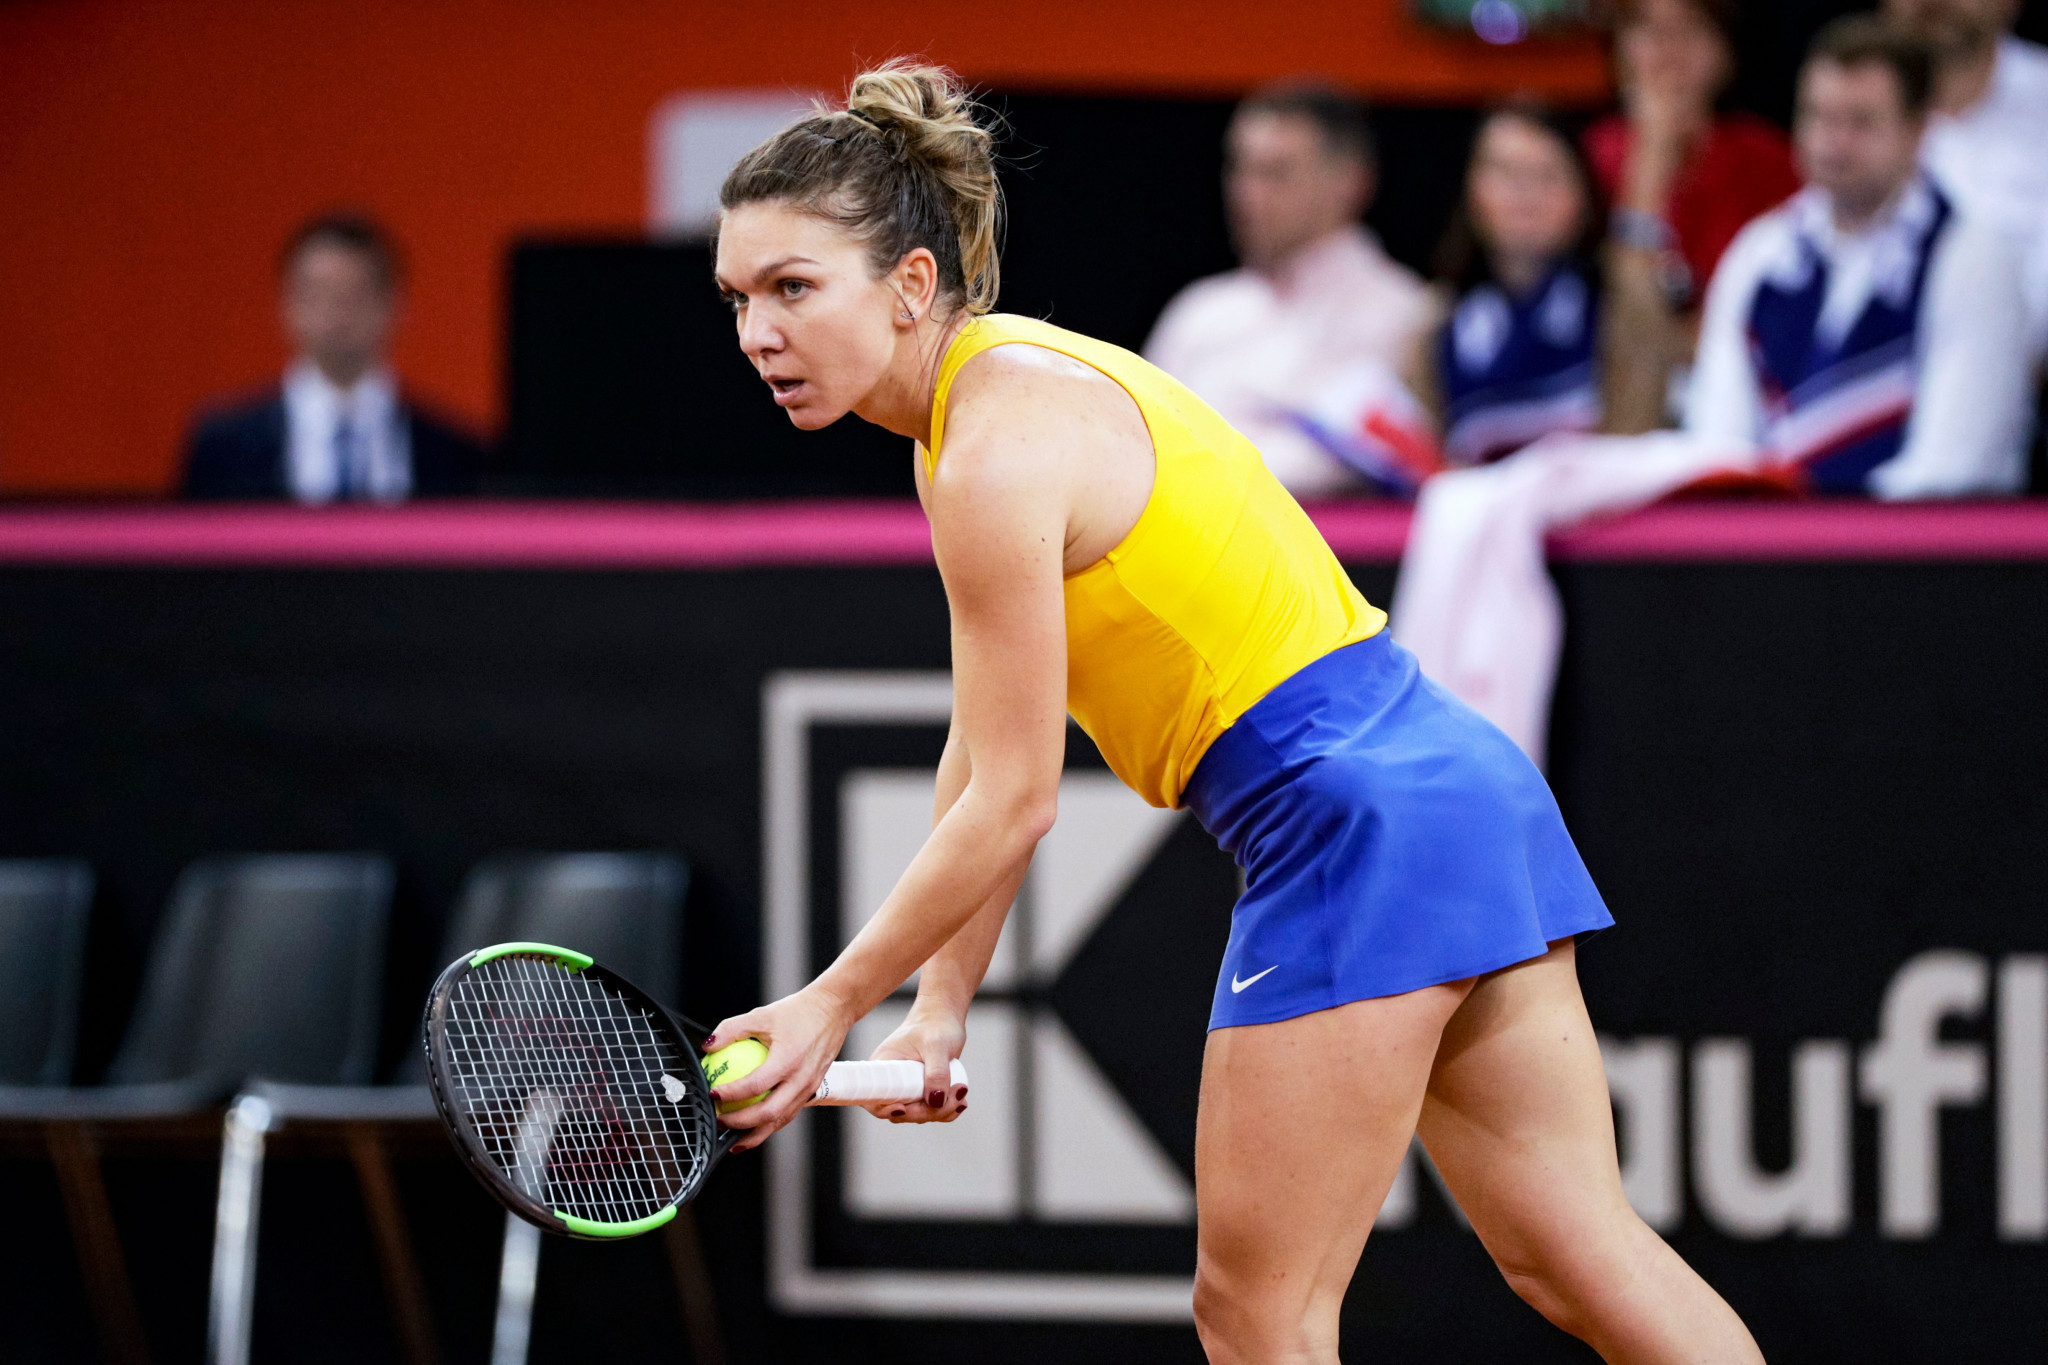 Romania's Simona Halep is currently second in the world rankings ©Getty Images